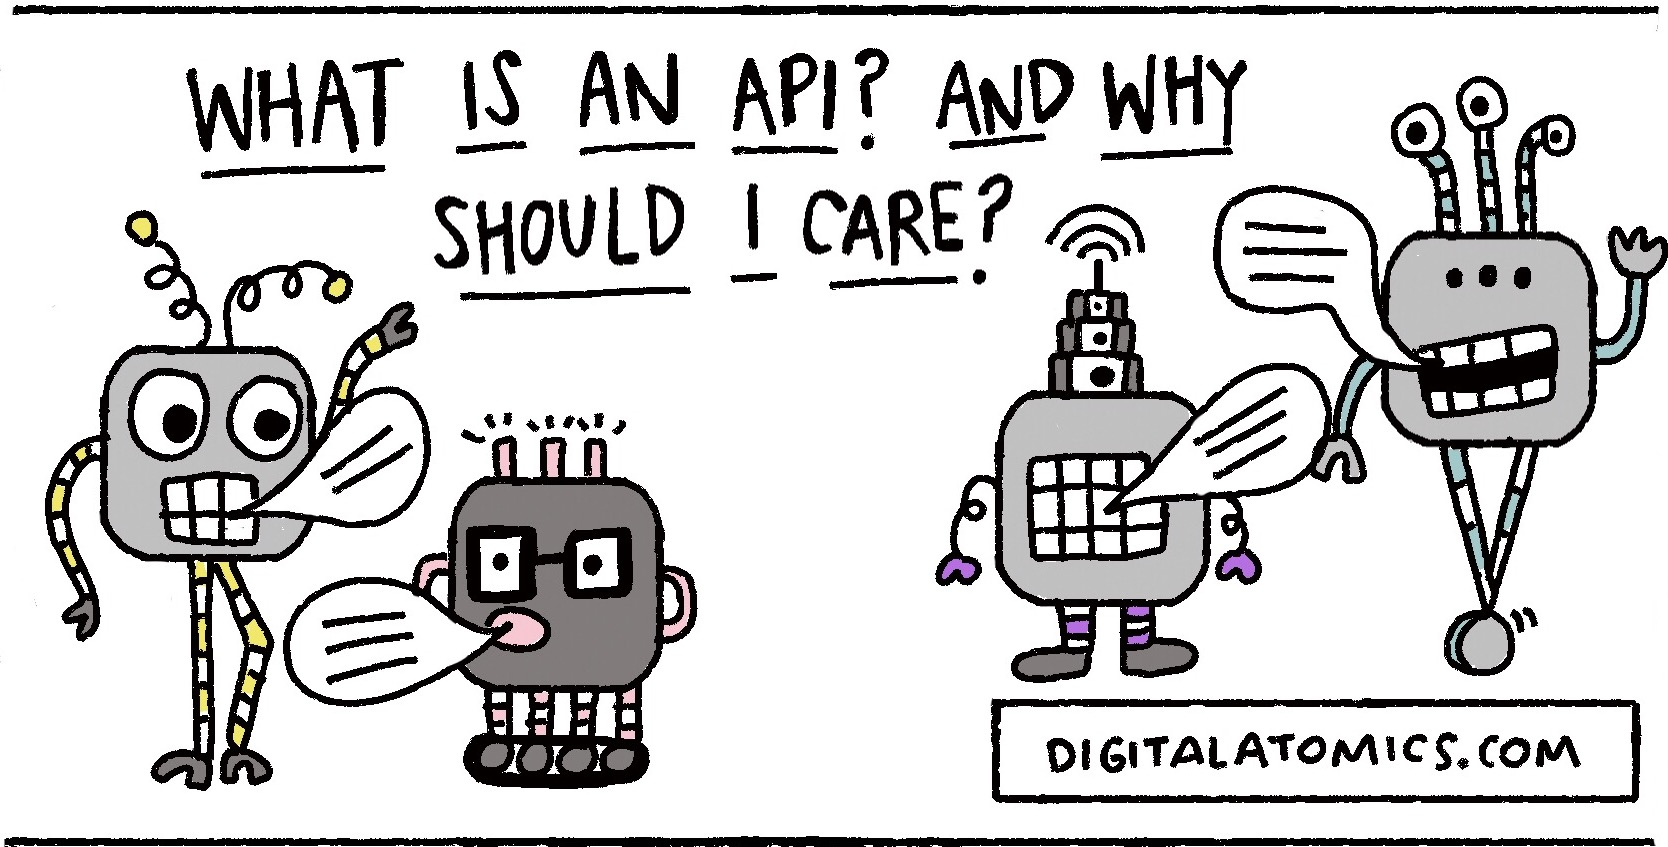 What is an API? And Why Should I Care?